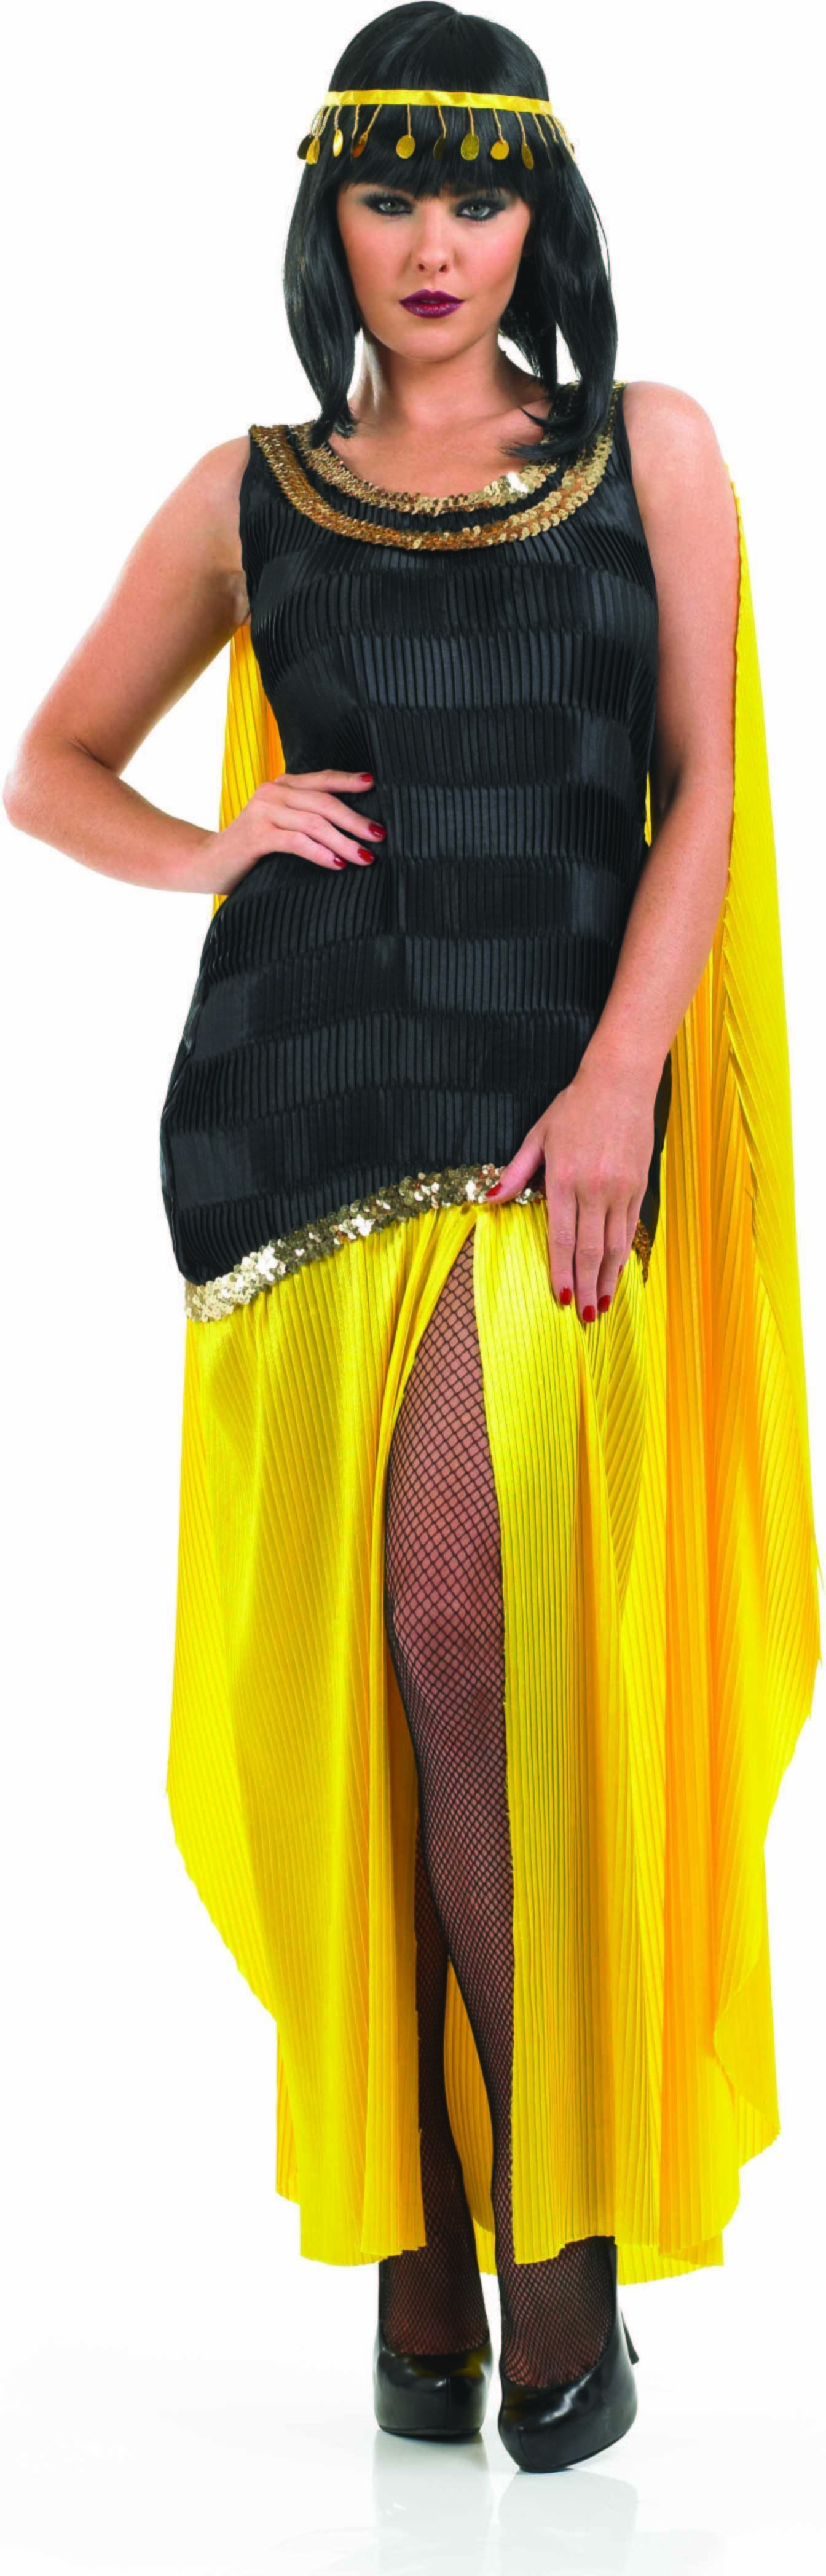 Ladies Cleopatra Girl Greek Outfit - (Black, Yellow)